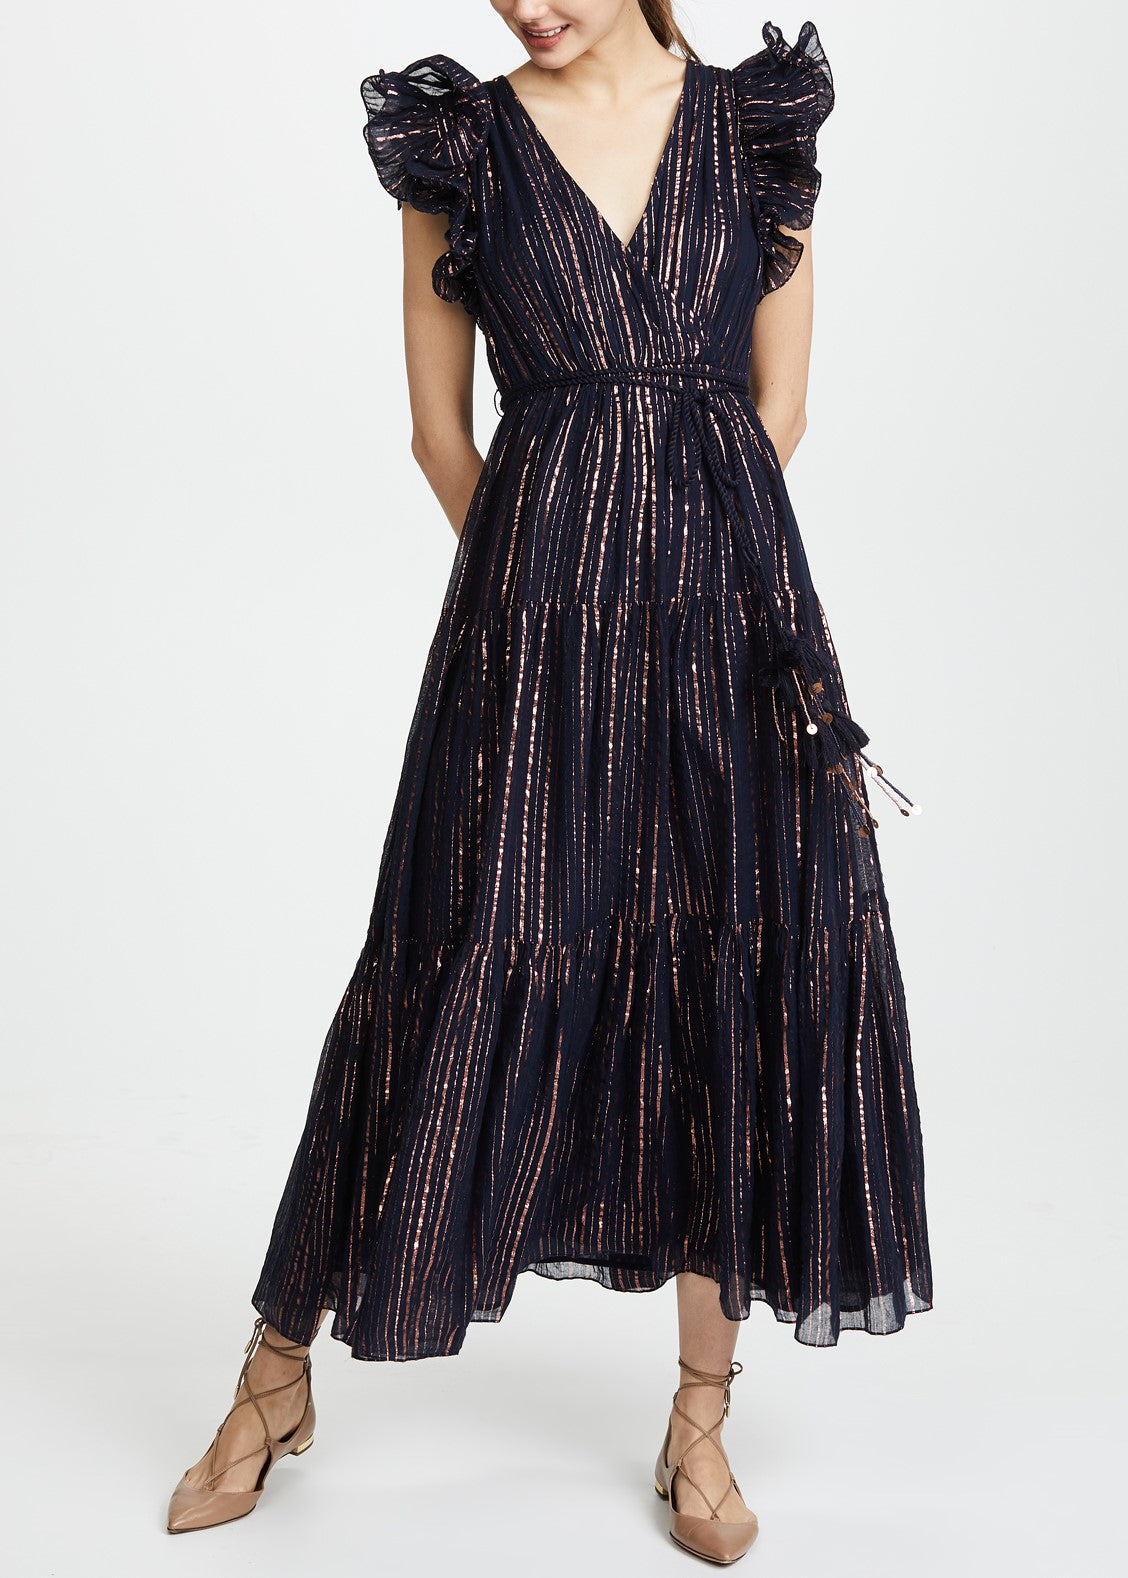 Ulla Johnson Liliana dress in midnight